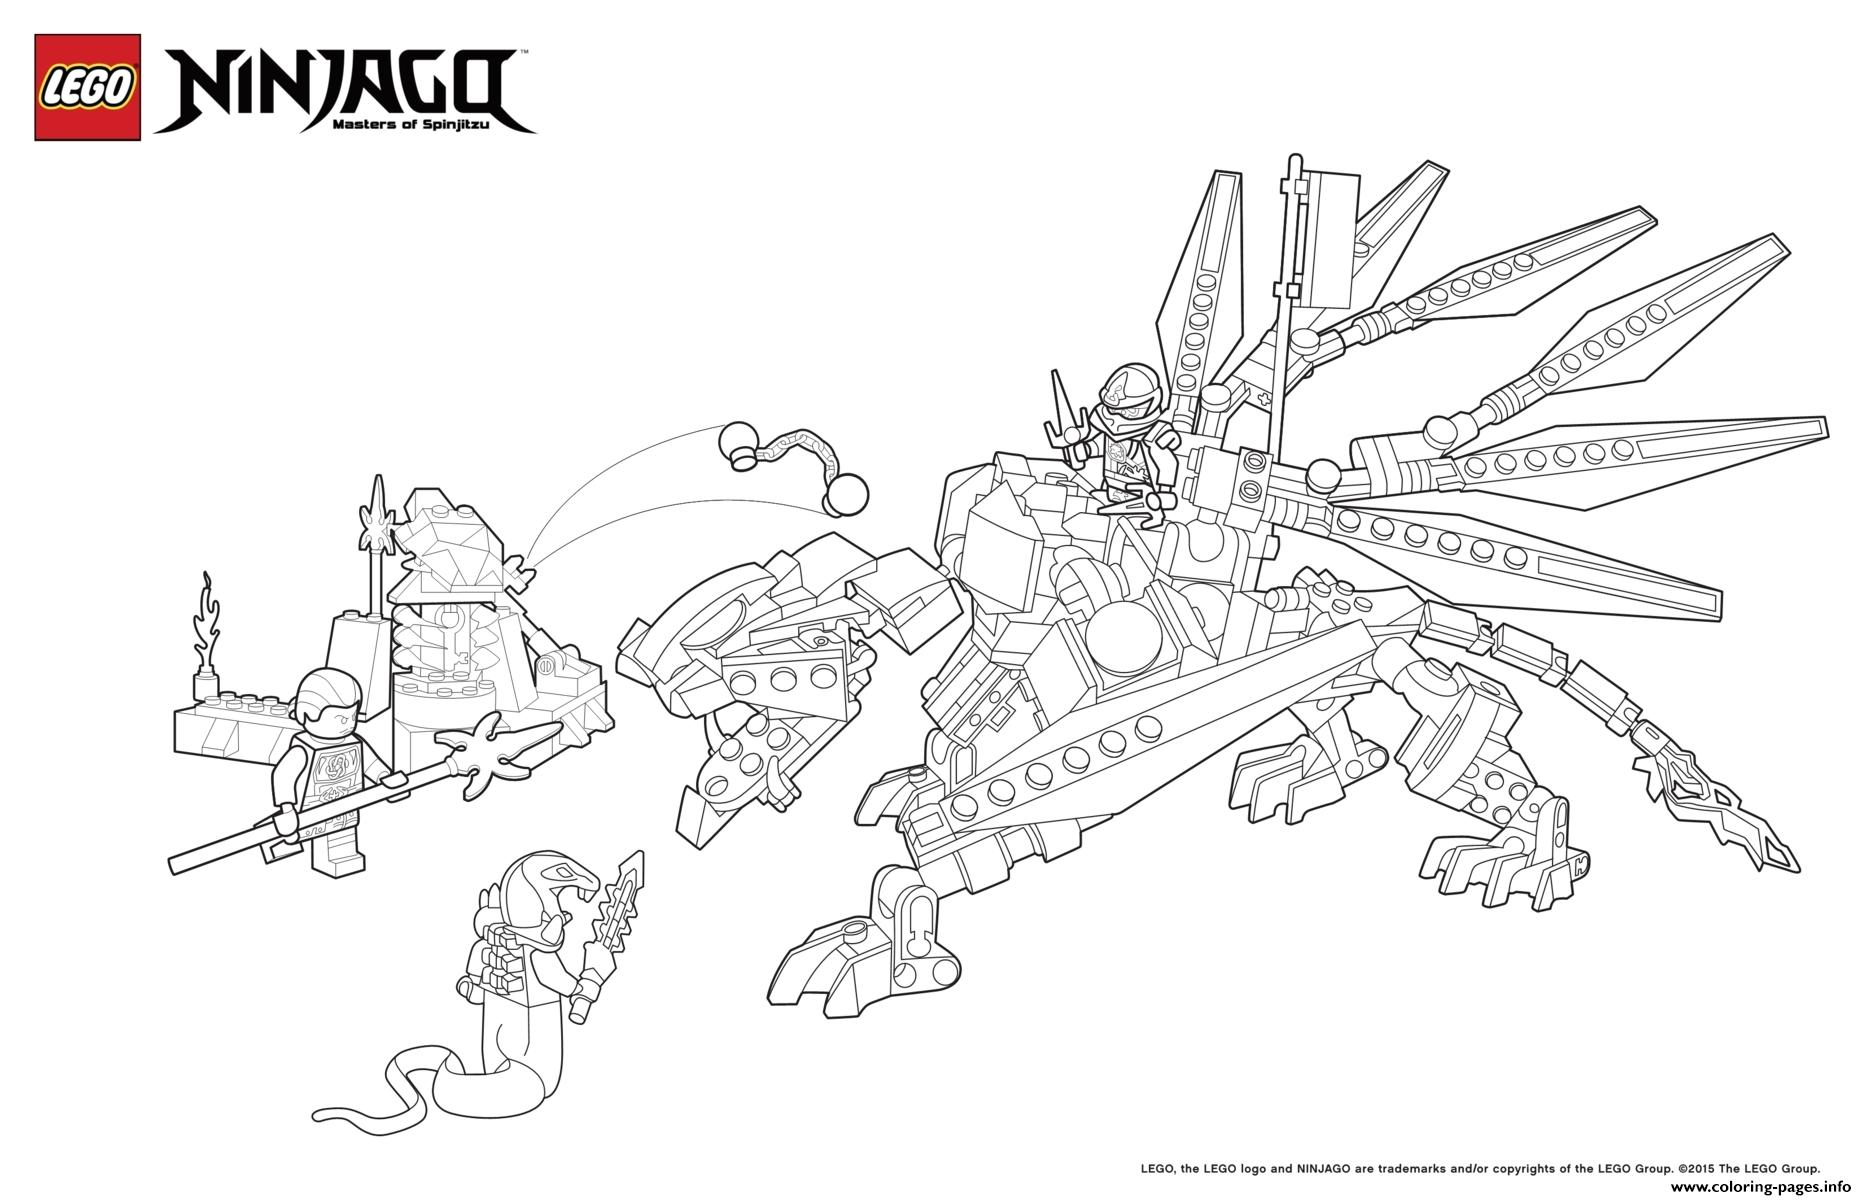 dragon ninja attack enemy lego coloring pages printable